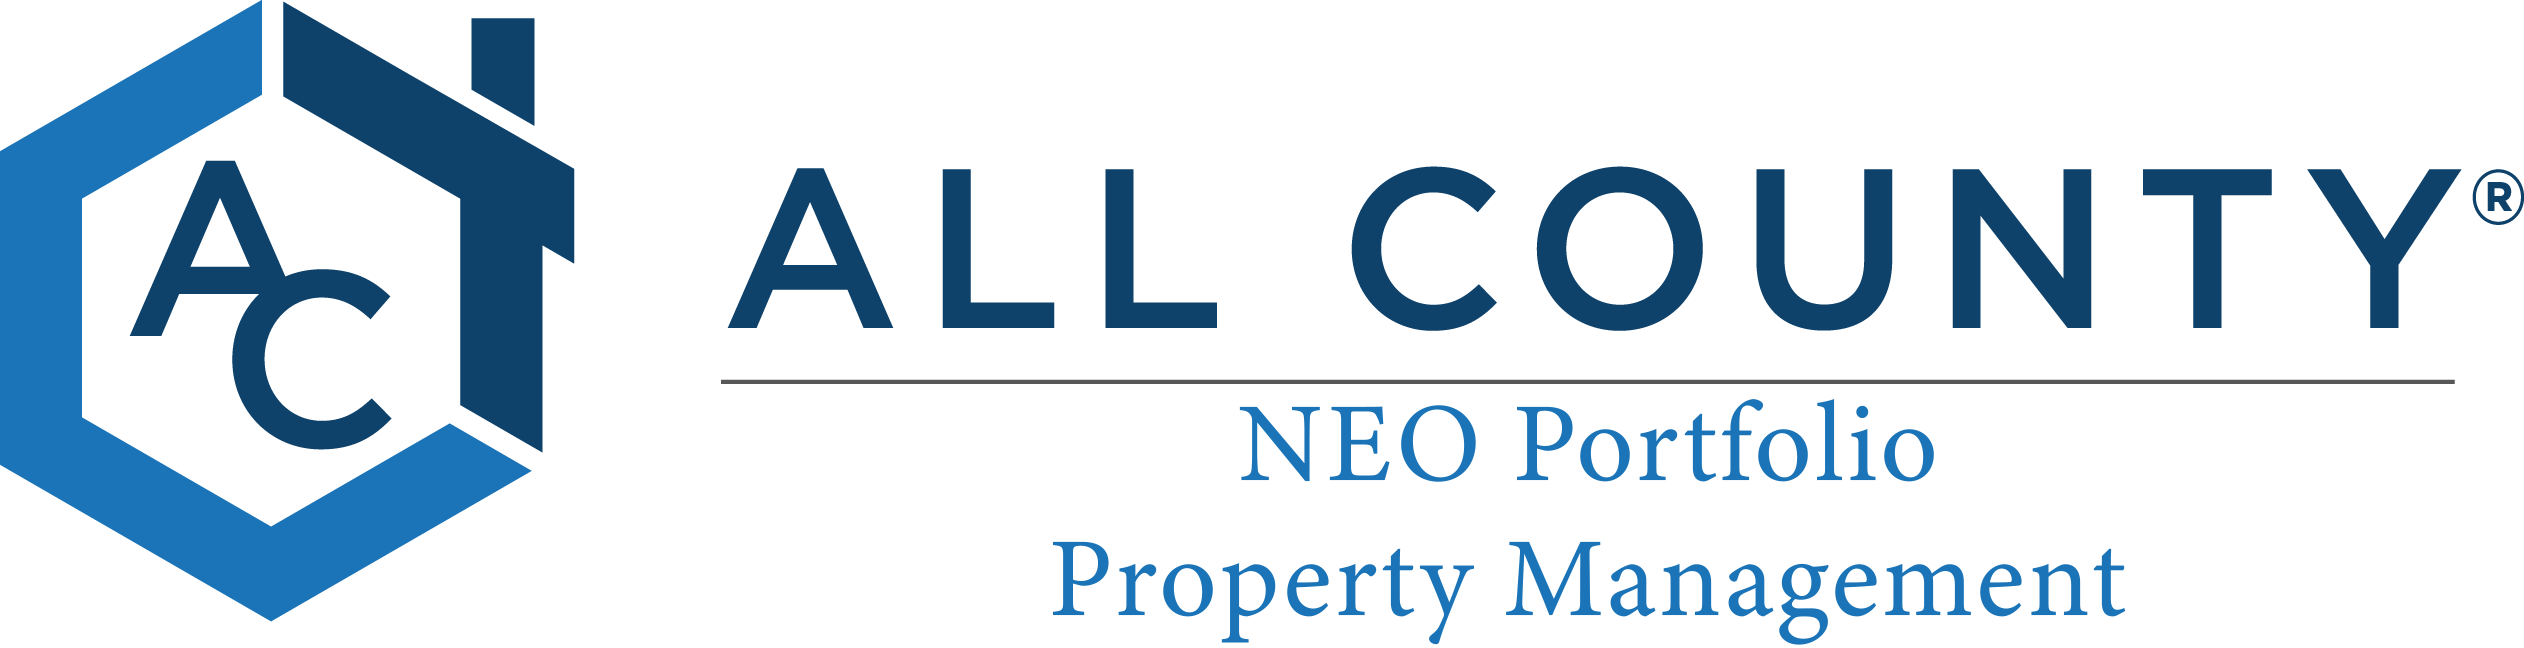 All County NEO Portfolio Property Management